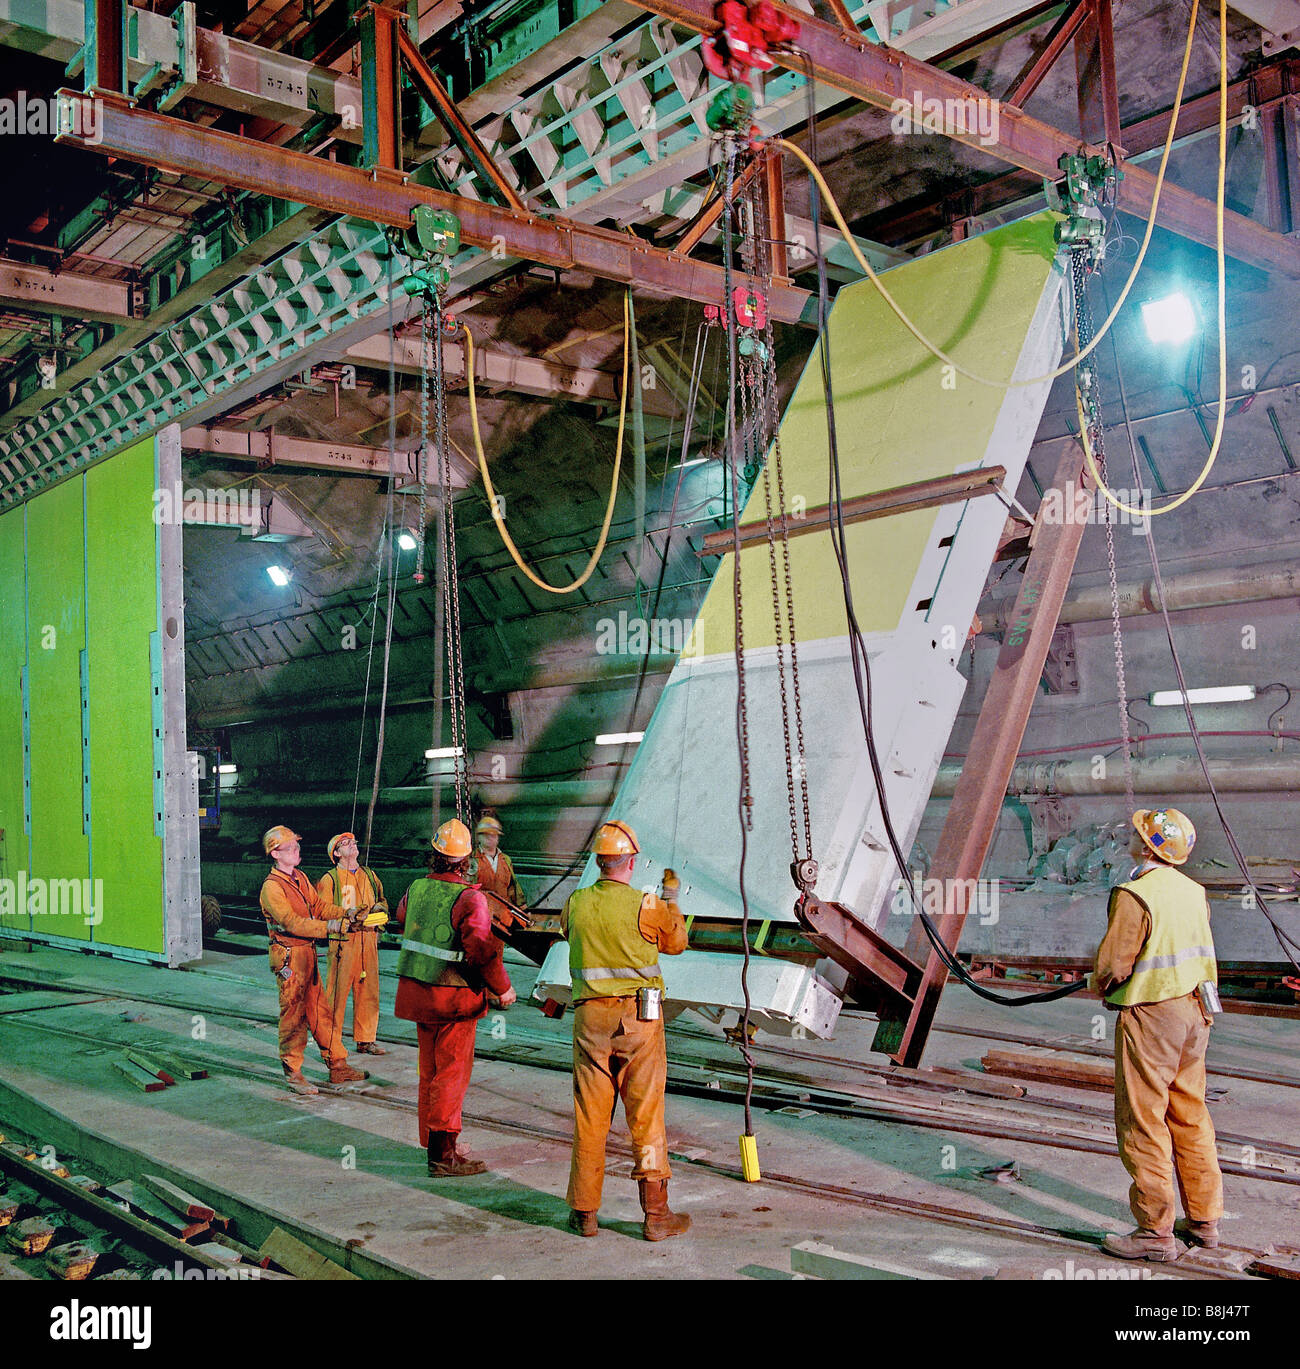 Installing 92 tonne steel doors panels used to separate rail tunnels in an undersea Crossover on the Channel Tunnel - Stock Image